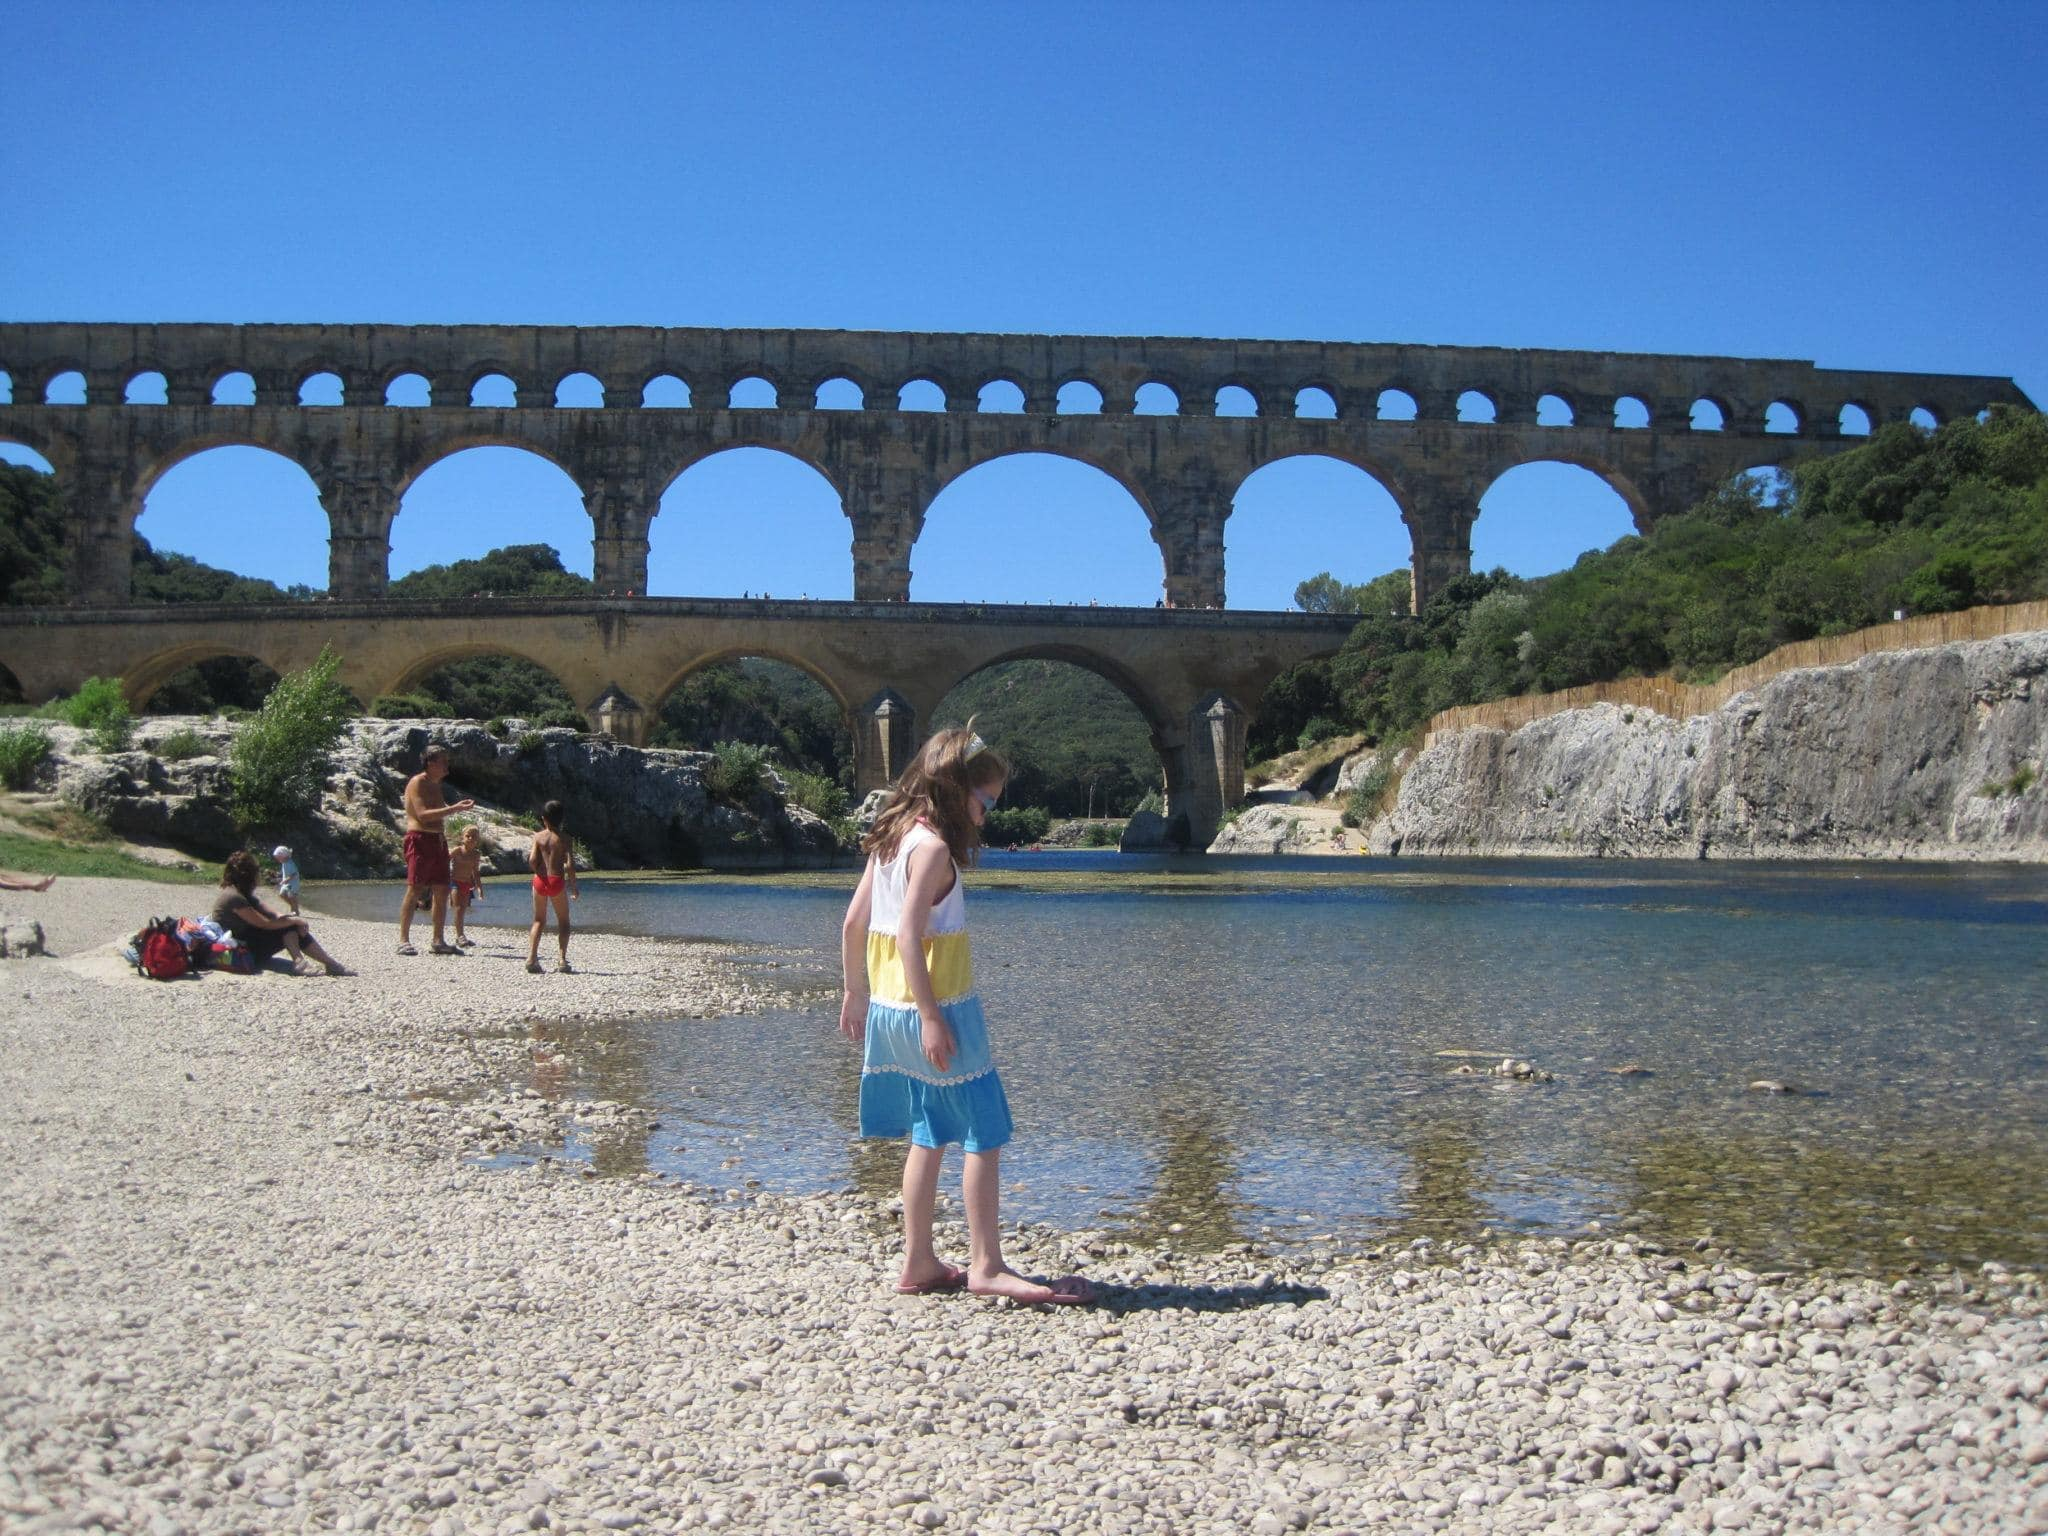 Relaxing afternoon at Pont du Gard